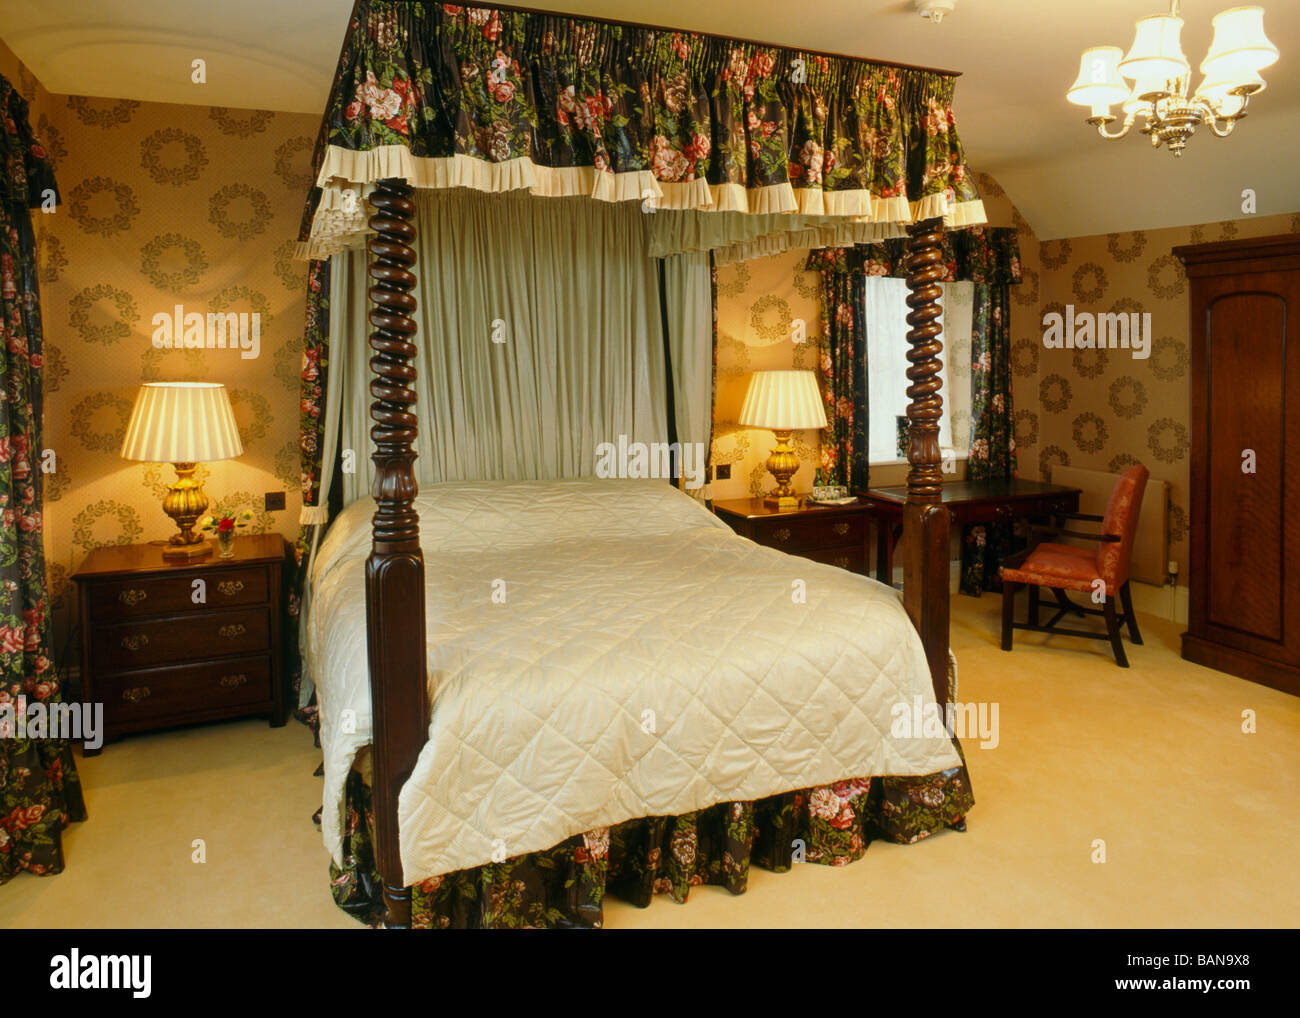 Bedroom with a large traditional four poster bed - Stock Image